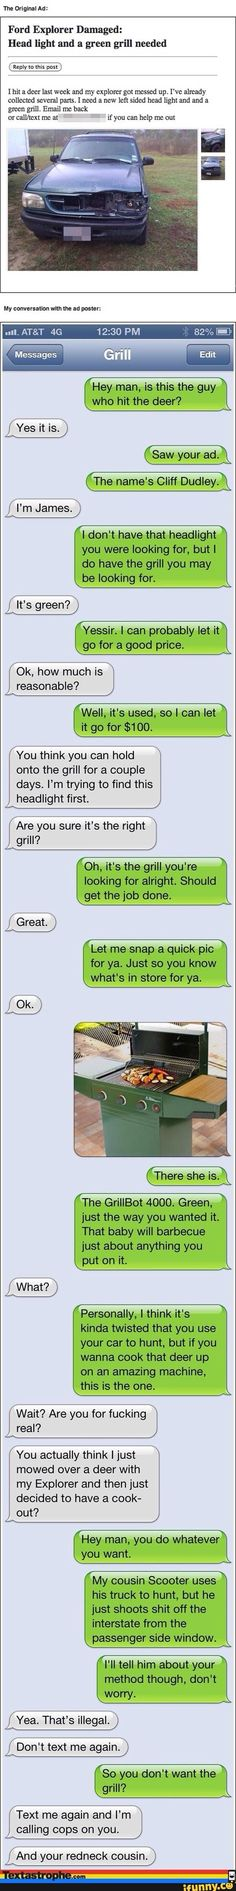 Funny Memes Of The Day - 26 Pics - #funnymemes #funnypictures #humor #funnytexts #funnyquotes #funnyanimals #funny #lol #haha #memes #entertainment #vifunow.com